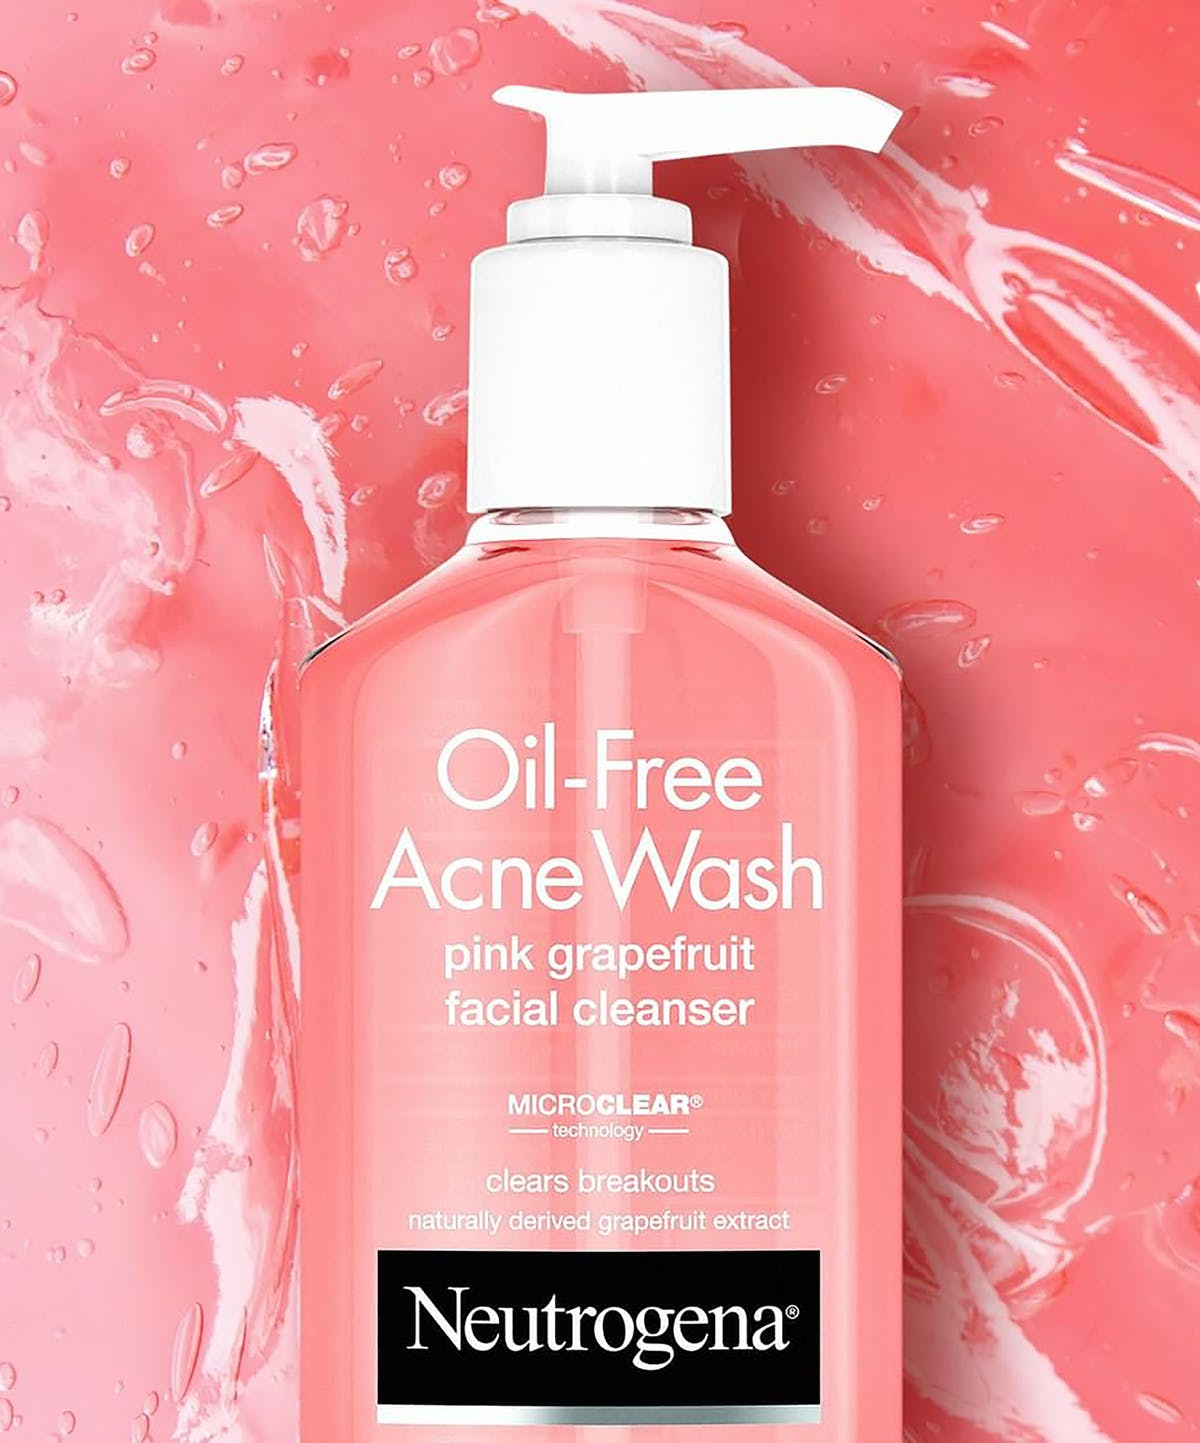 64f4c375f66 ... Oil-Free Acne Wash Pink Grapefruit Facial Cleanser